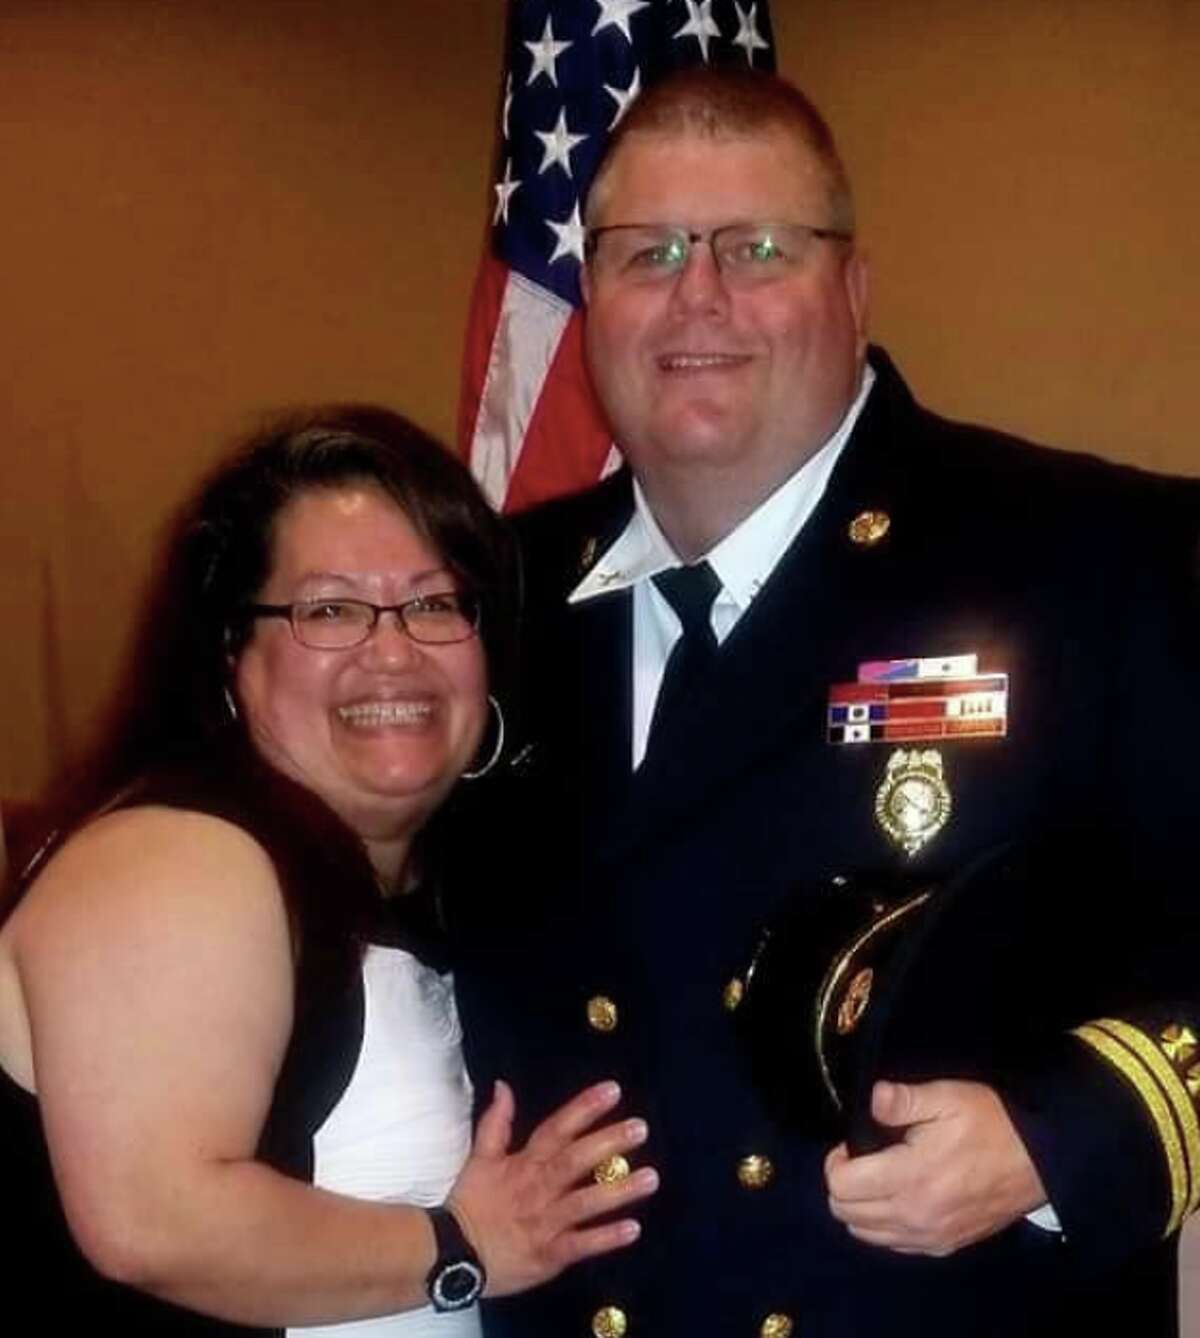 Fire Captain Bryant Anderson, a 16-year veteran of the Converse Fire Department, died Tuesday after a battle with COVID-19.